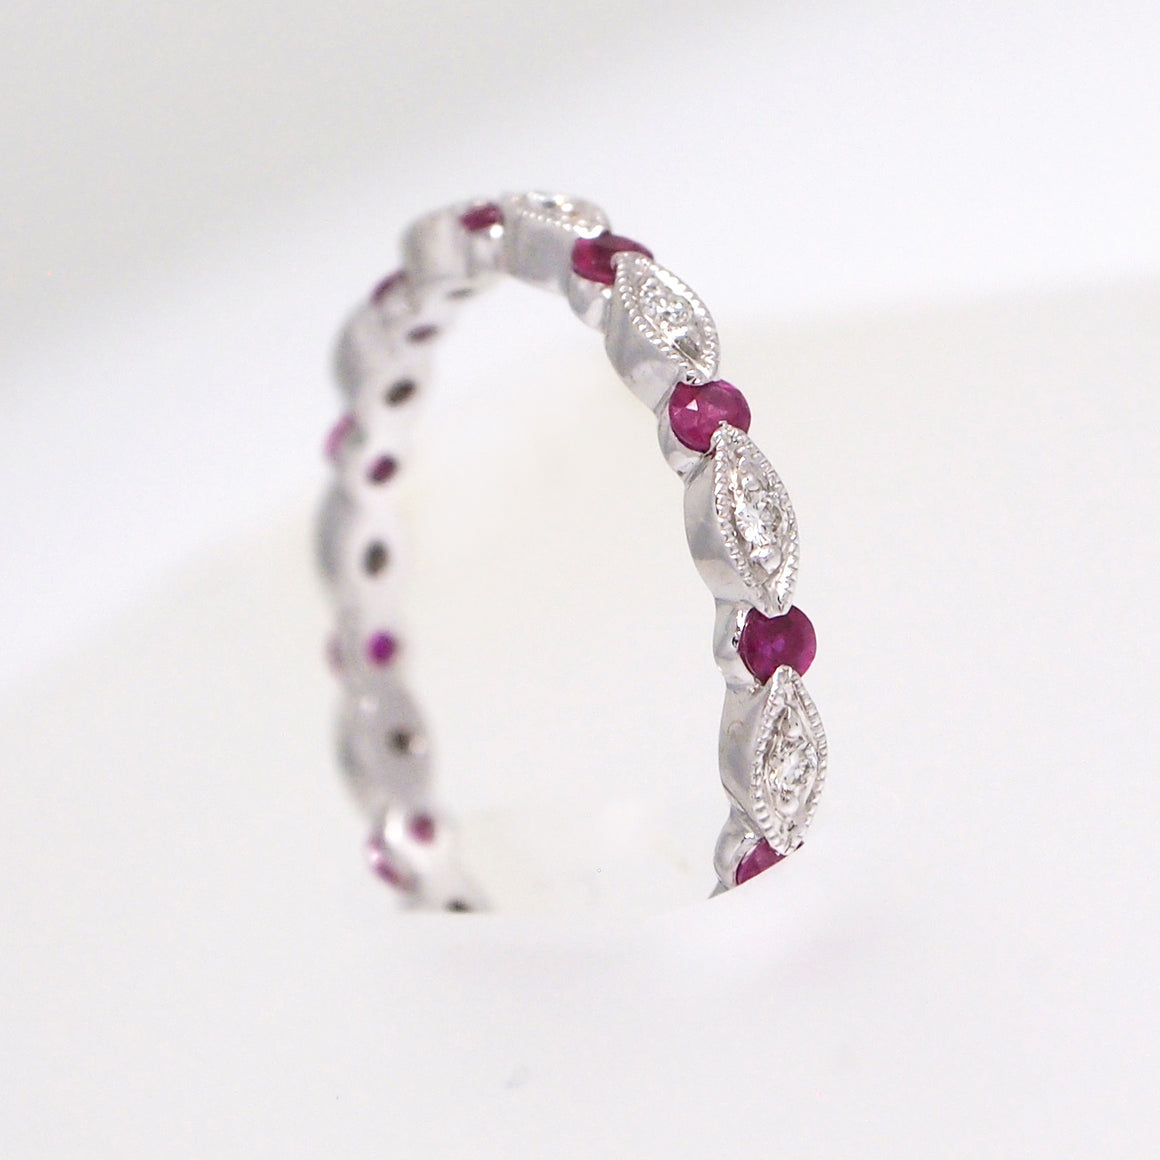 18K white gold eternity wedding band with 12 rubies weighing a total of 0.36 carats, and 12 diamonds weighing a total of 0.12 carats.